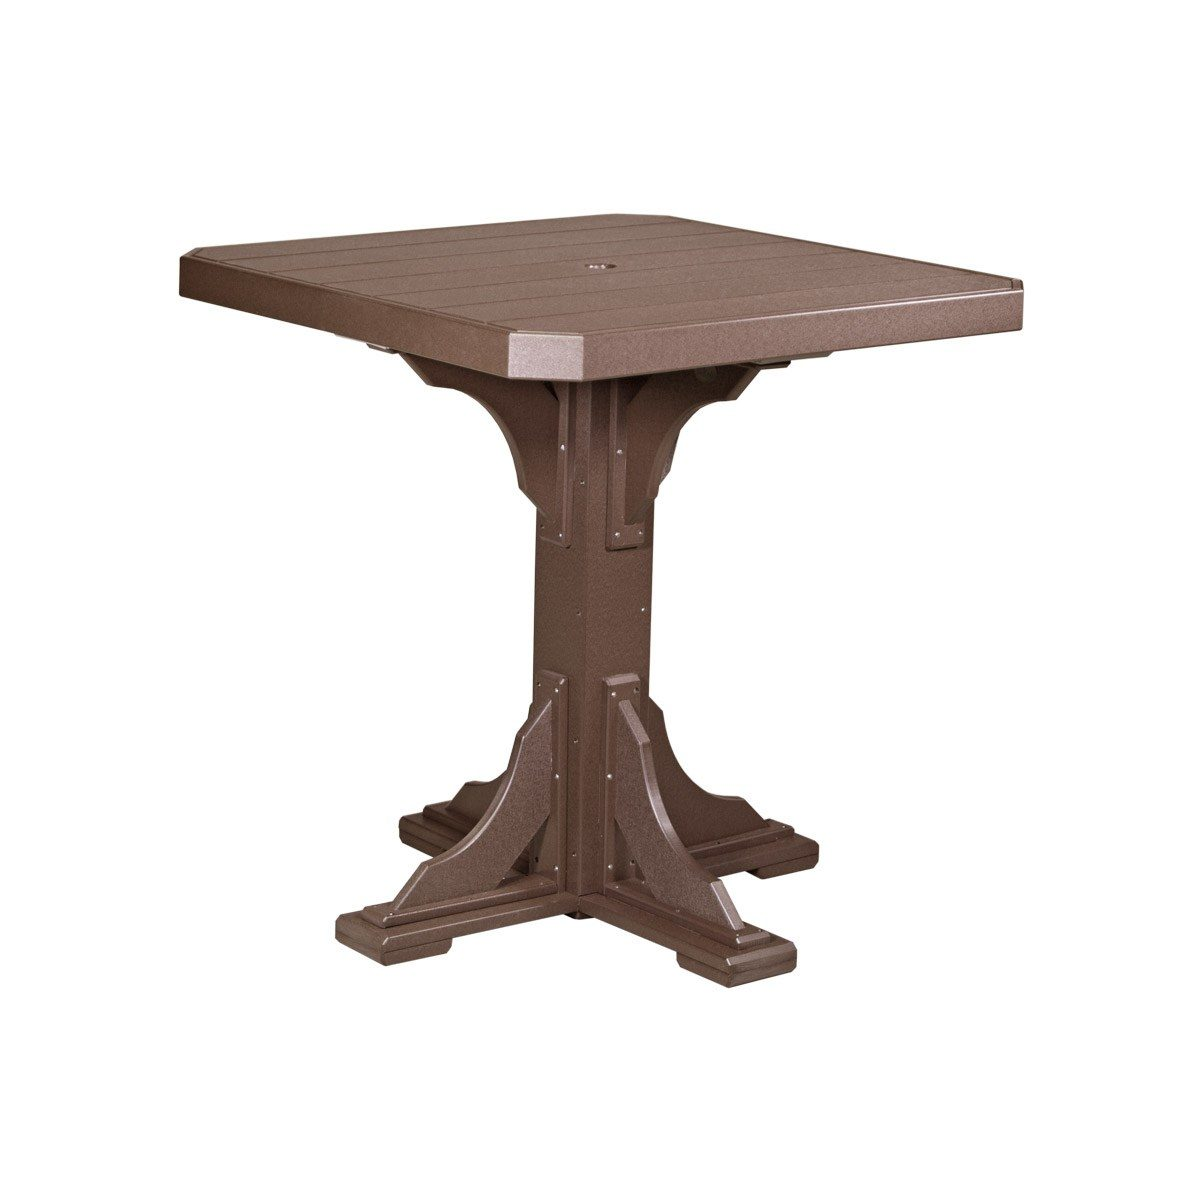 Square Bar Table (Bar Height Shown) - Chestnut Brown